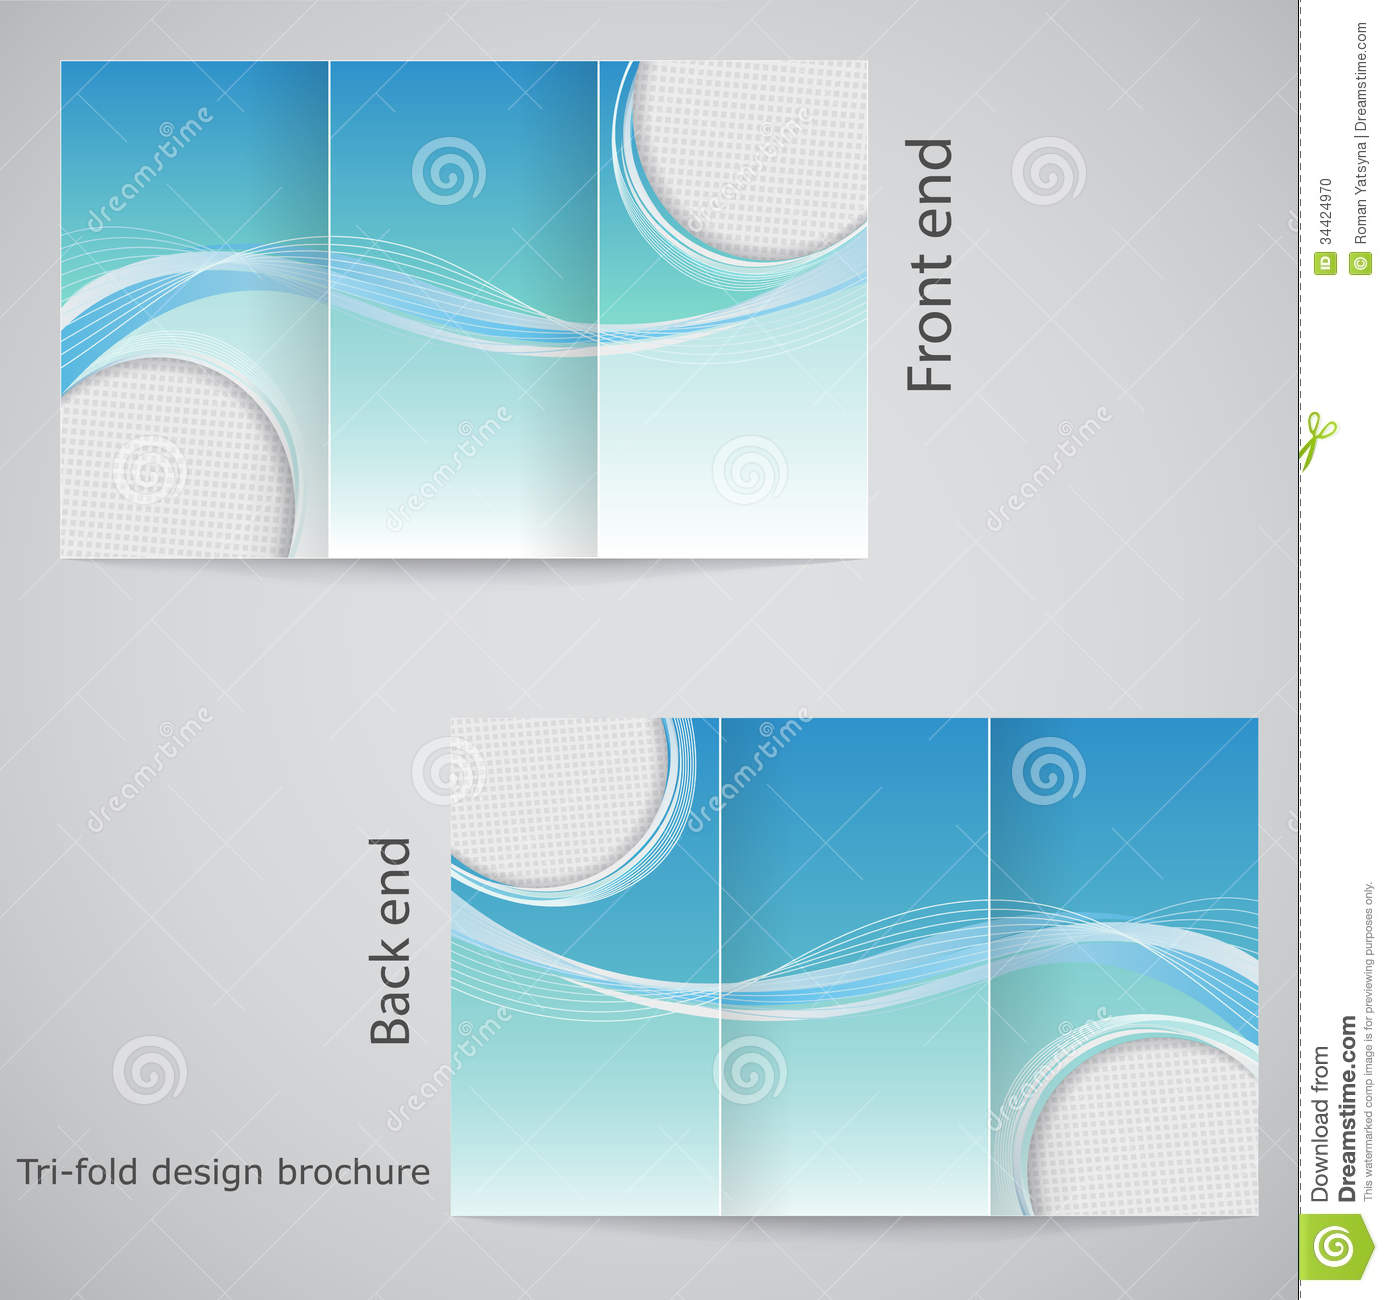 tri fold brochure design stock photo